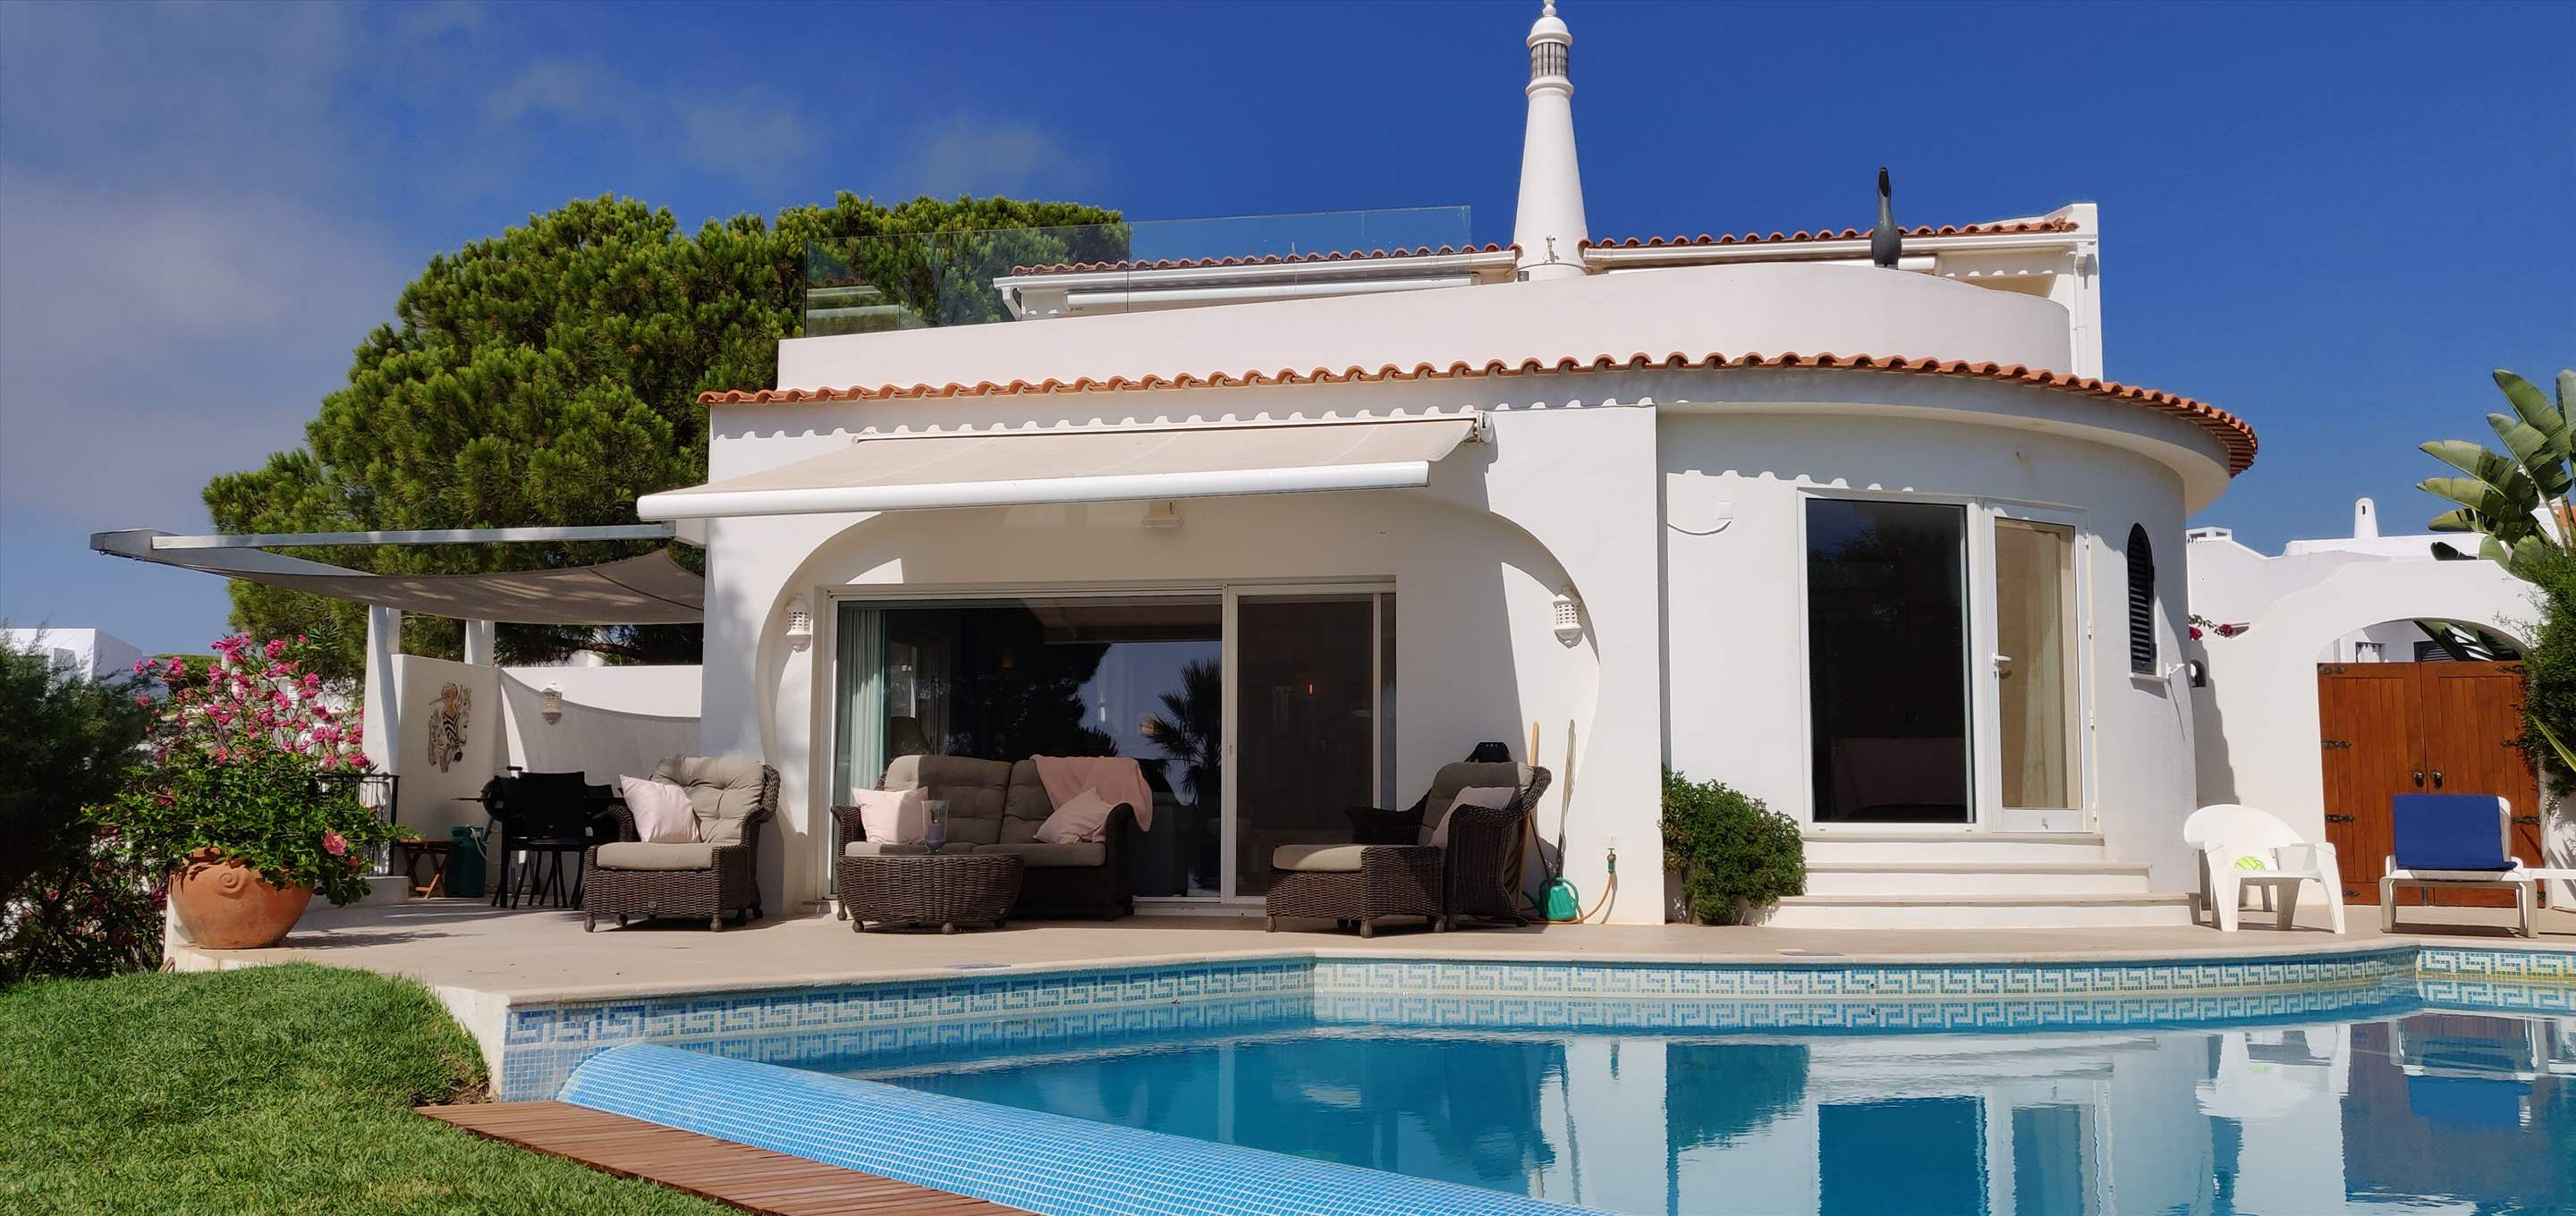 Villa Ocean Beach, 4 bedroom villa in Vale do Lobo, Algarve Photo #10